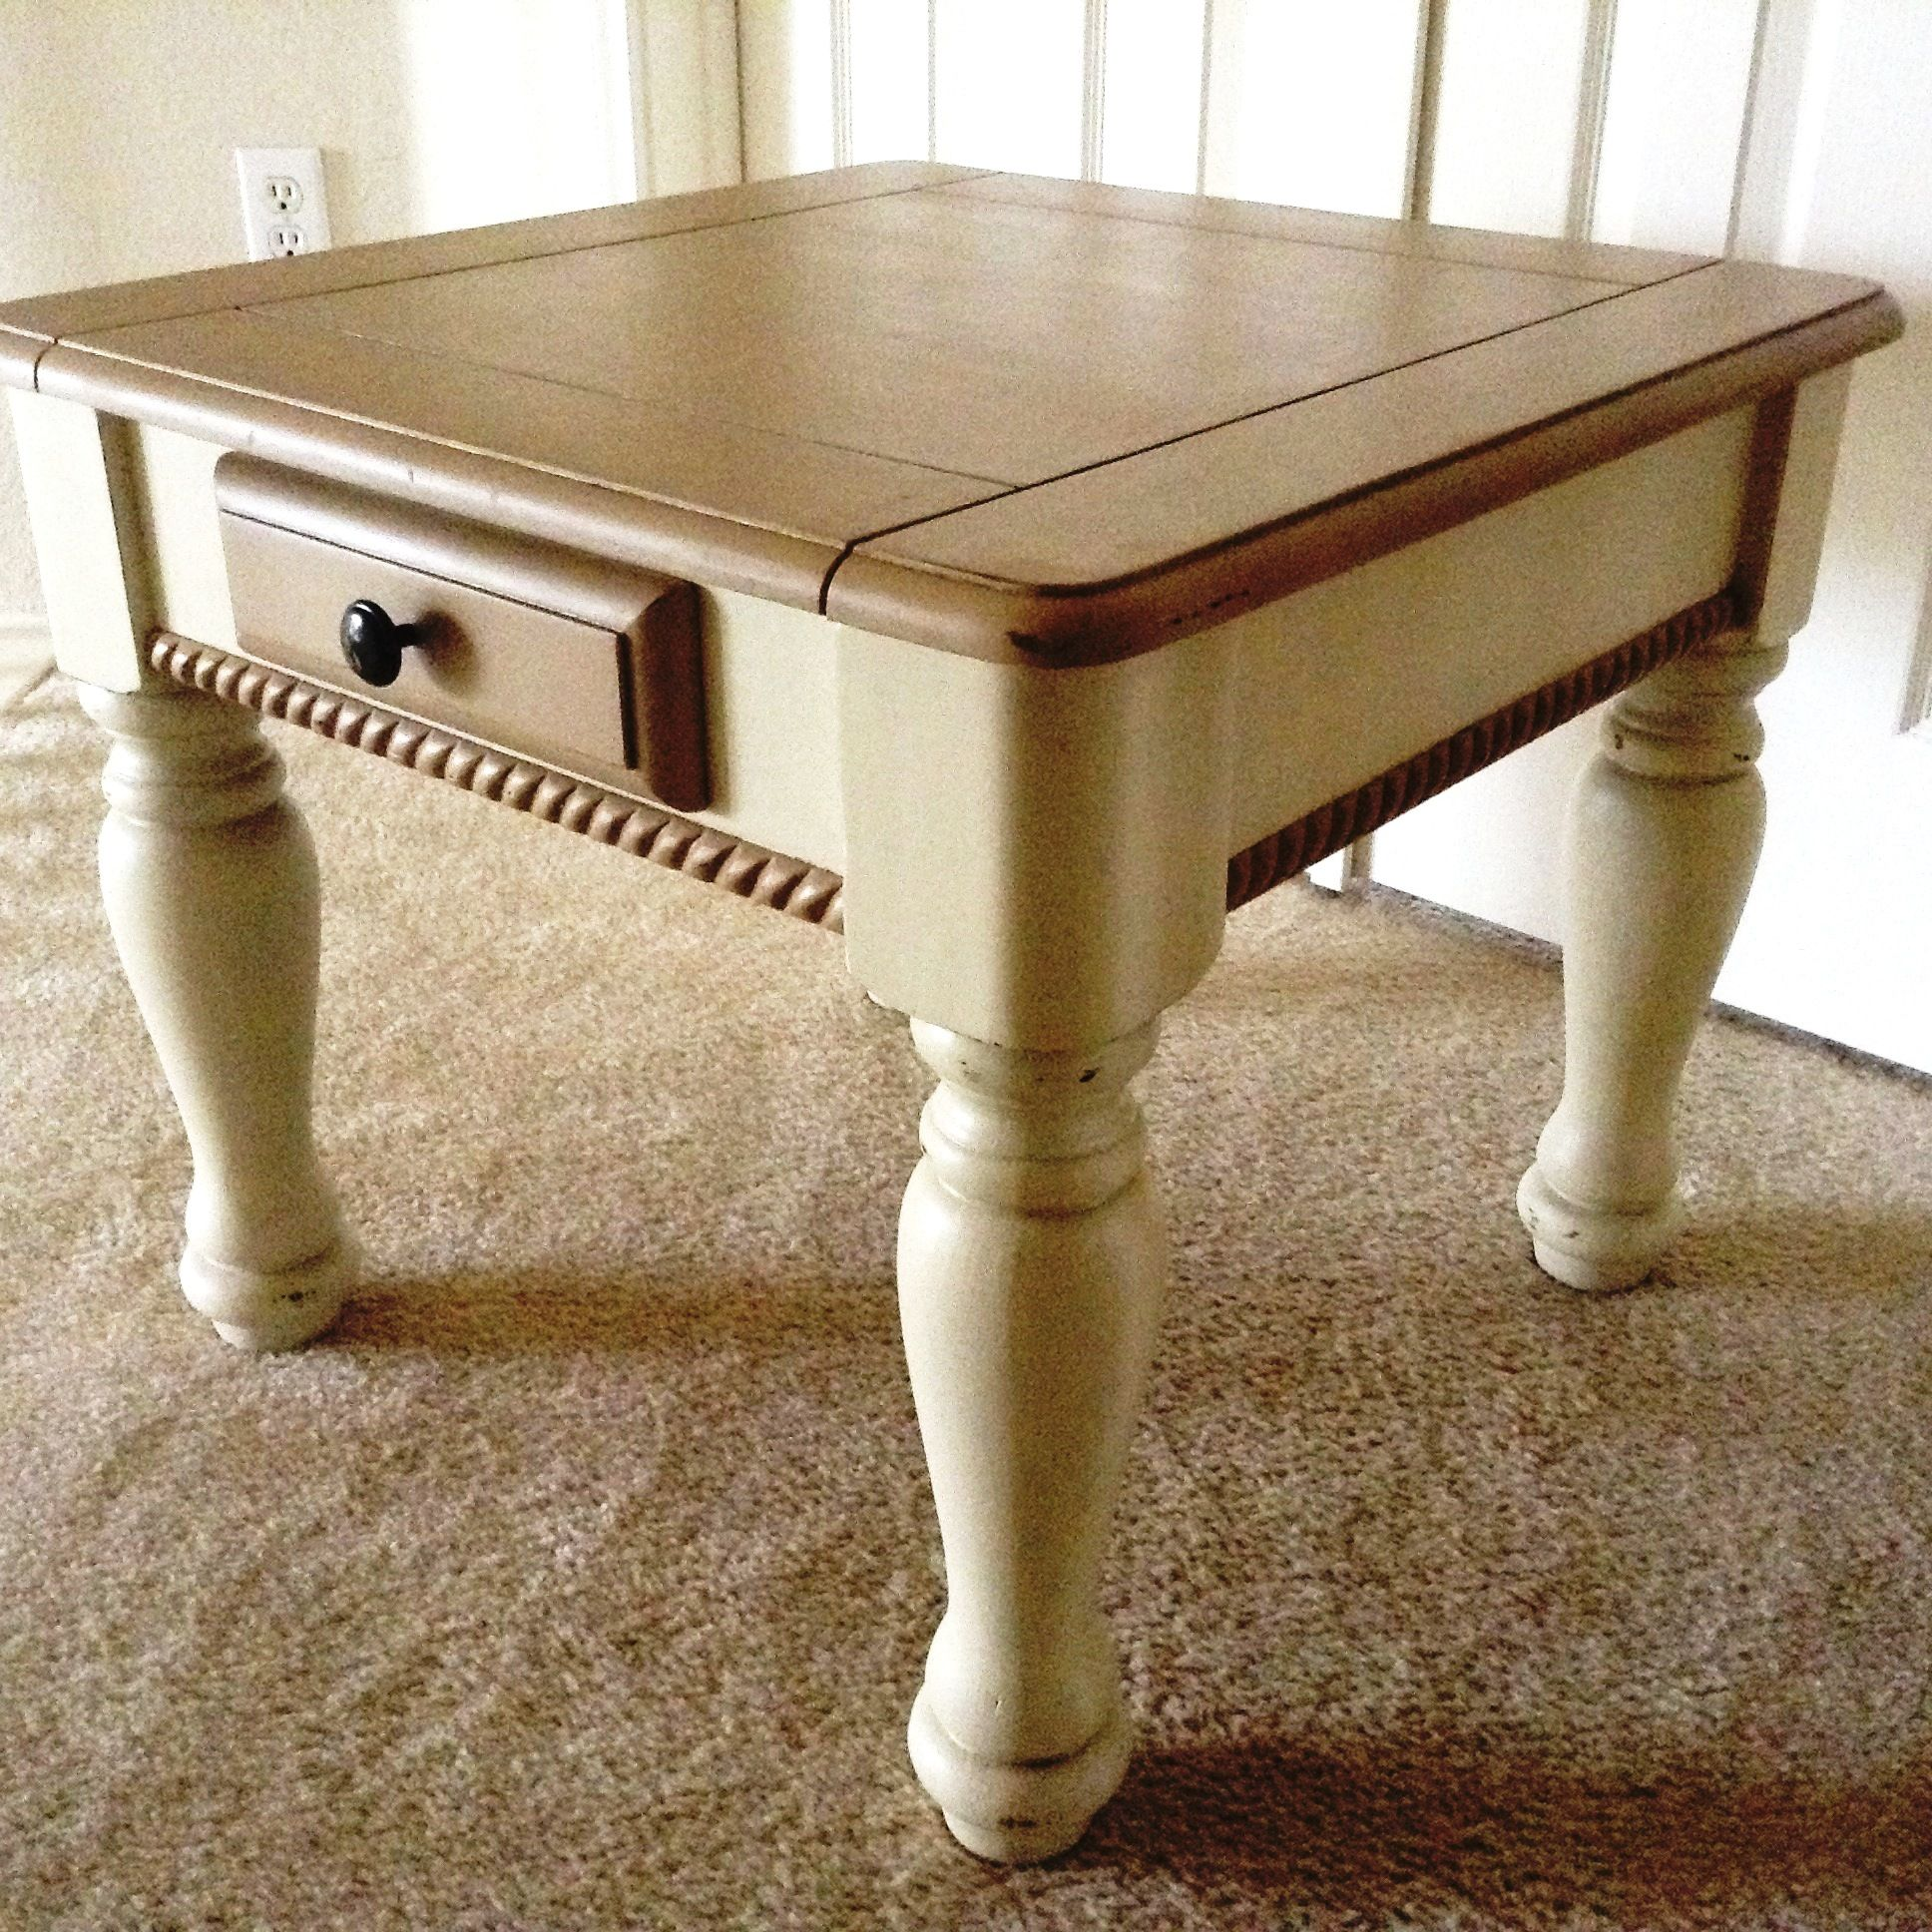 tan and cream colored end table painted using chalk style paint distressed tables lightly sealed with clear dark wax mary garden refinished universal furniture riverside medley